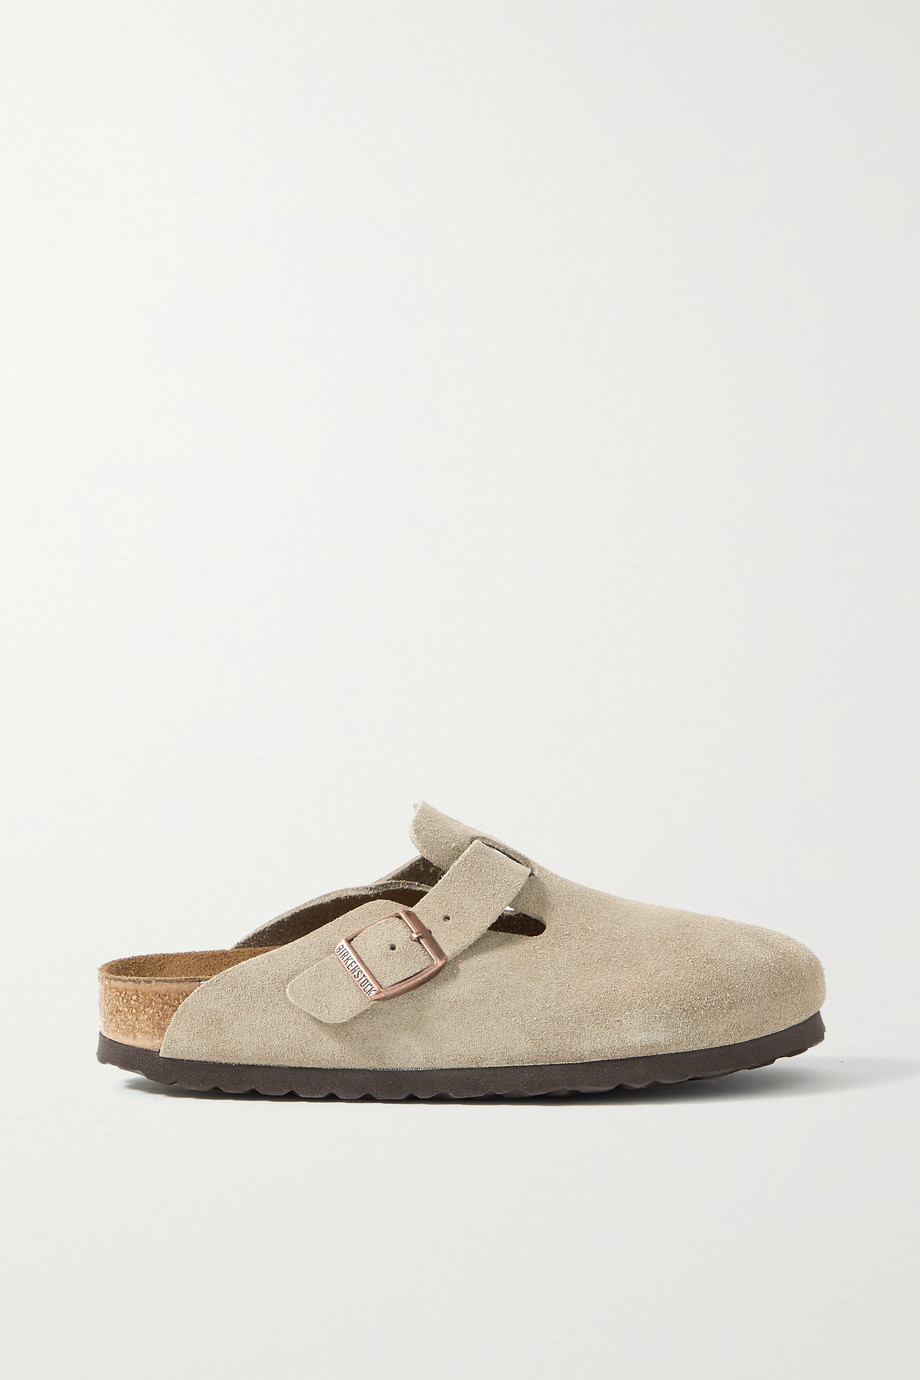 BIRKENSTOCK Boston suede slippers 560971904038705